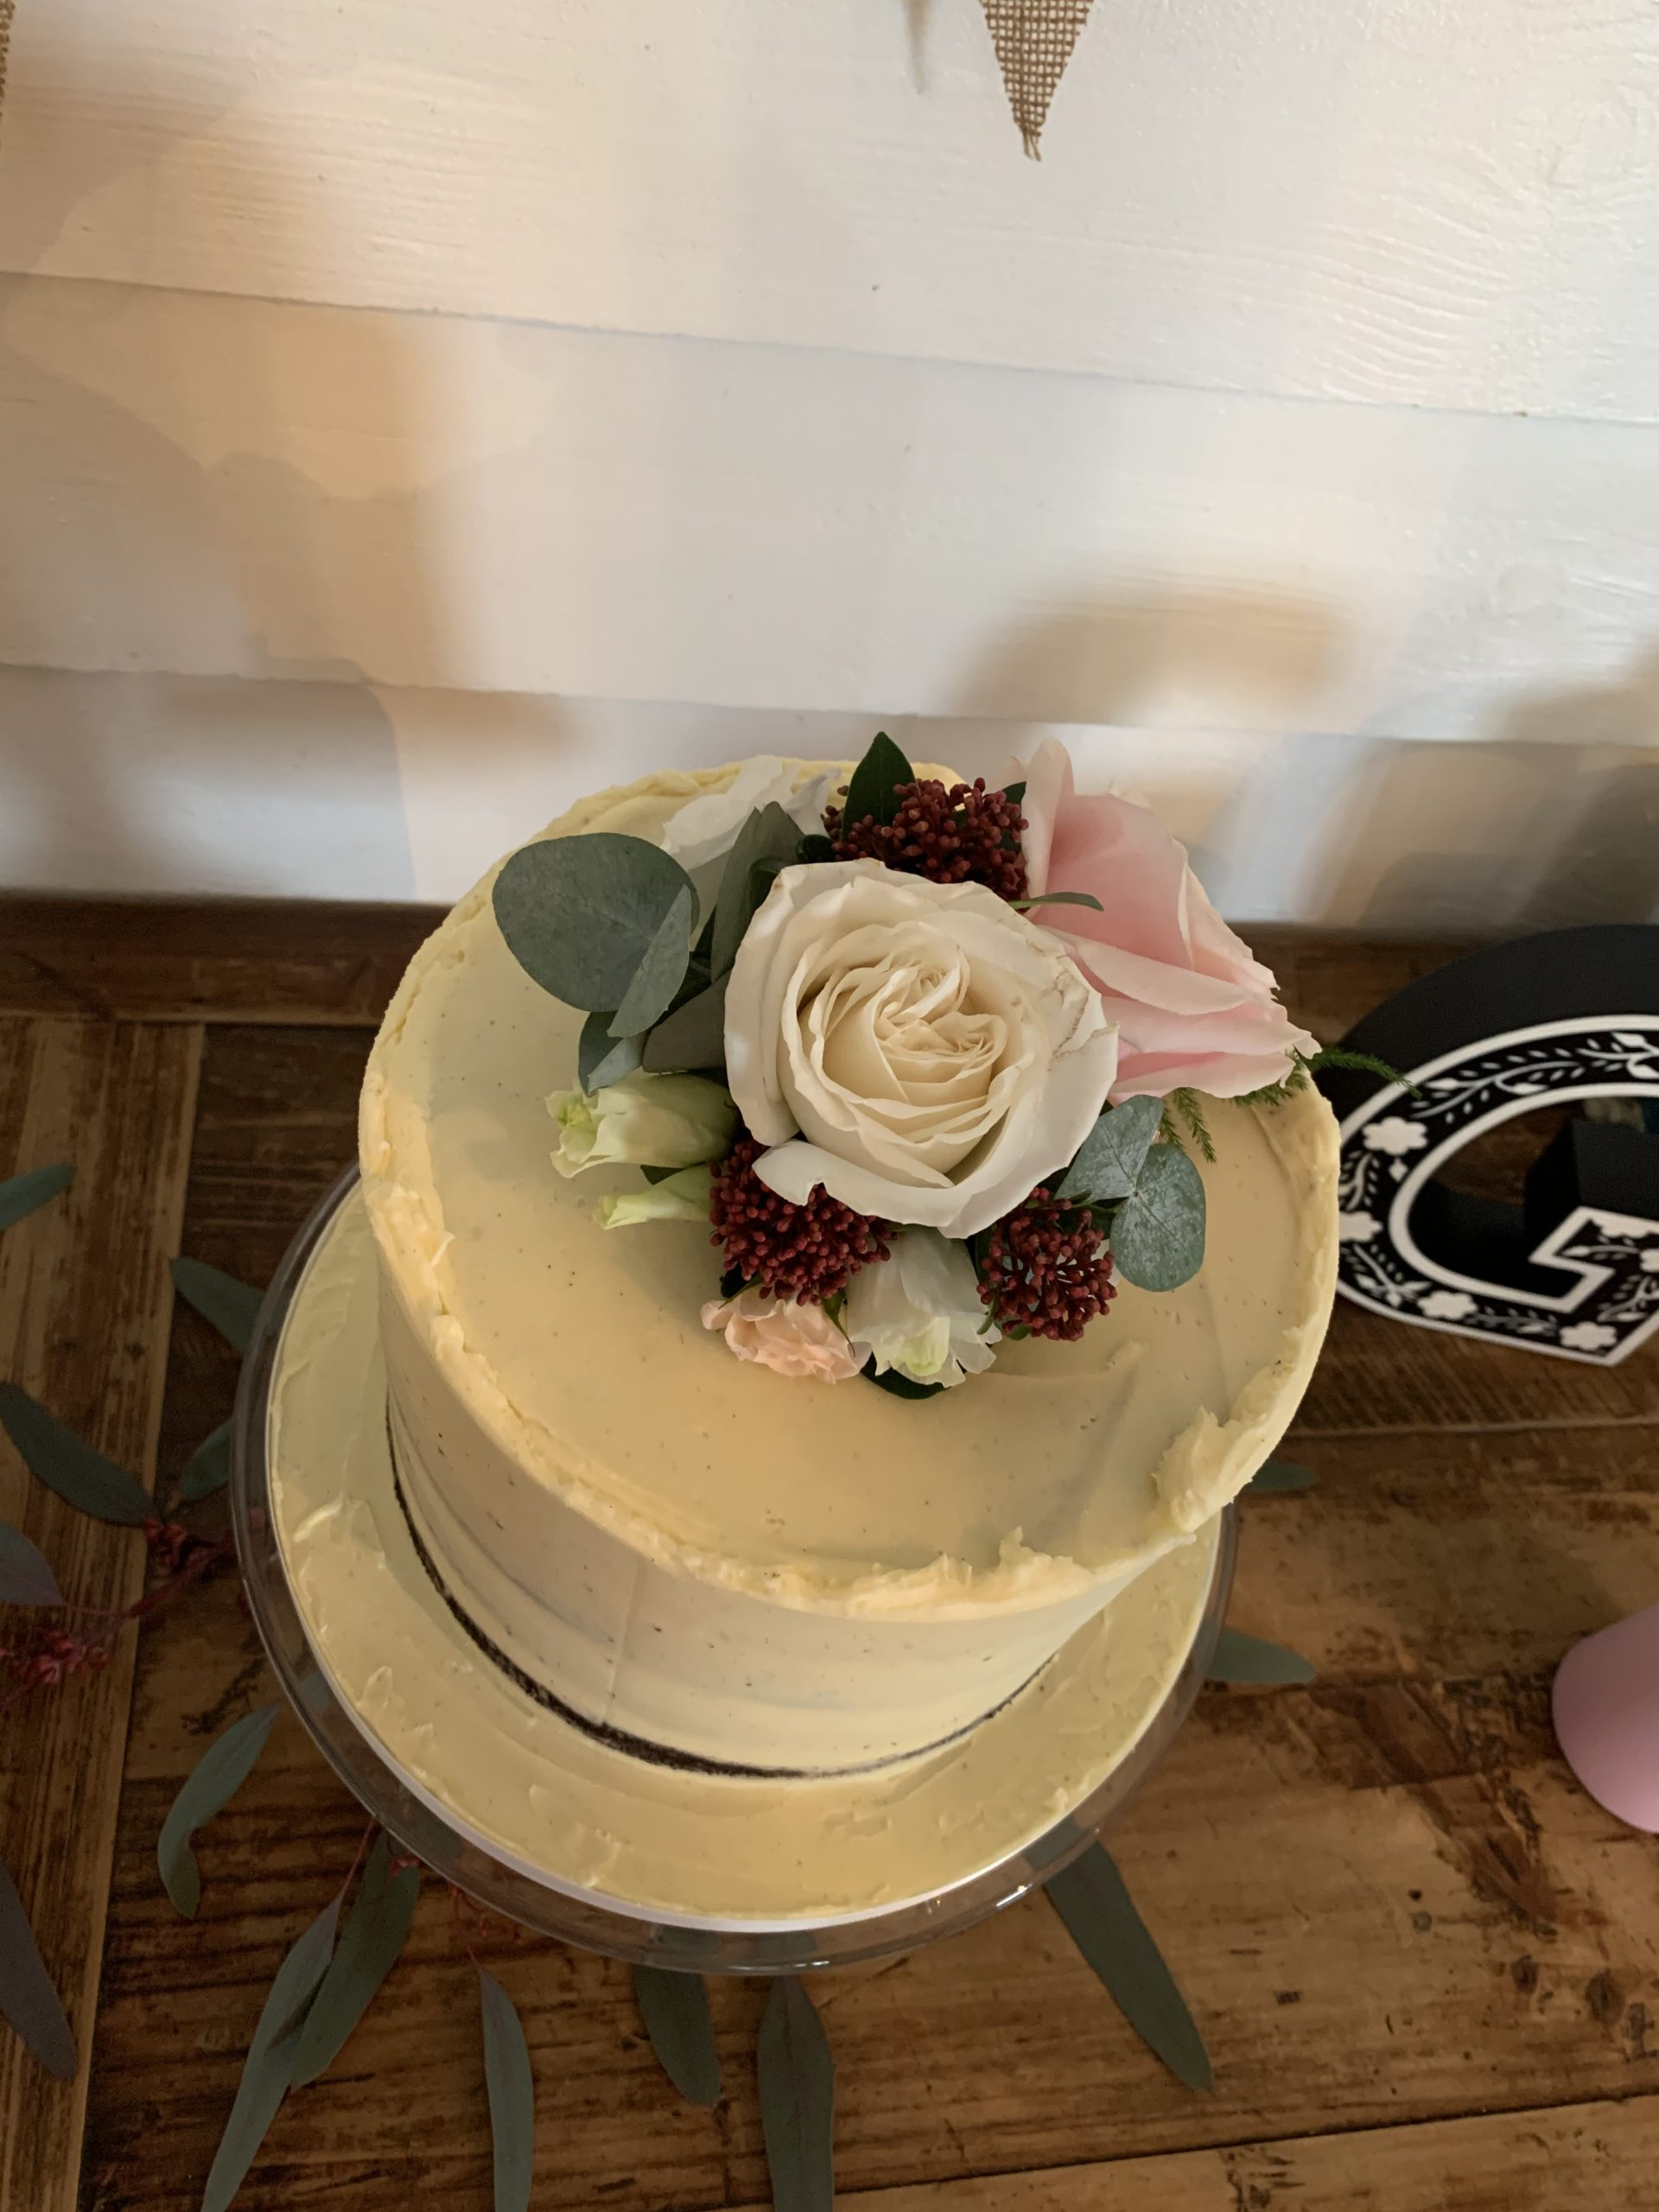 Rustic buttercream cake with fresh flowers